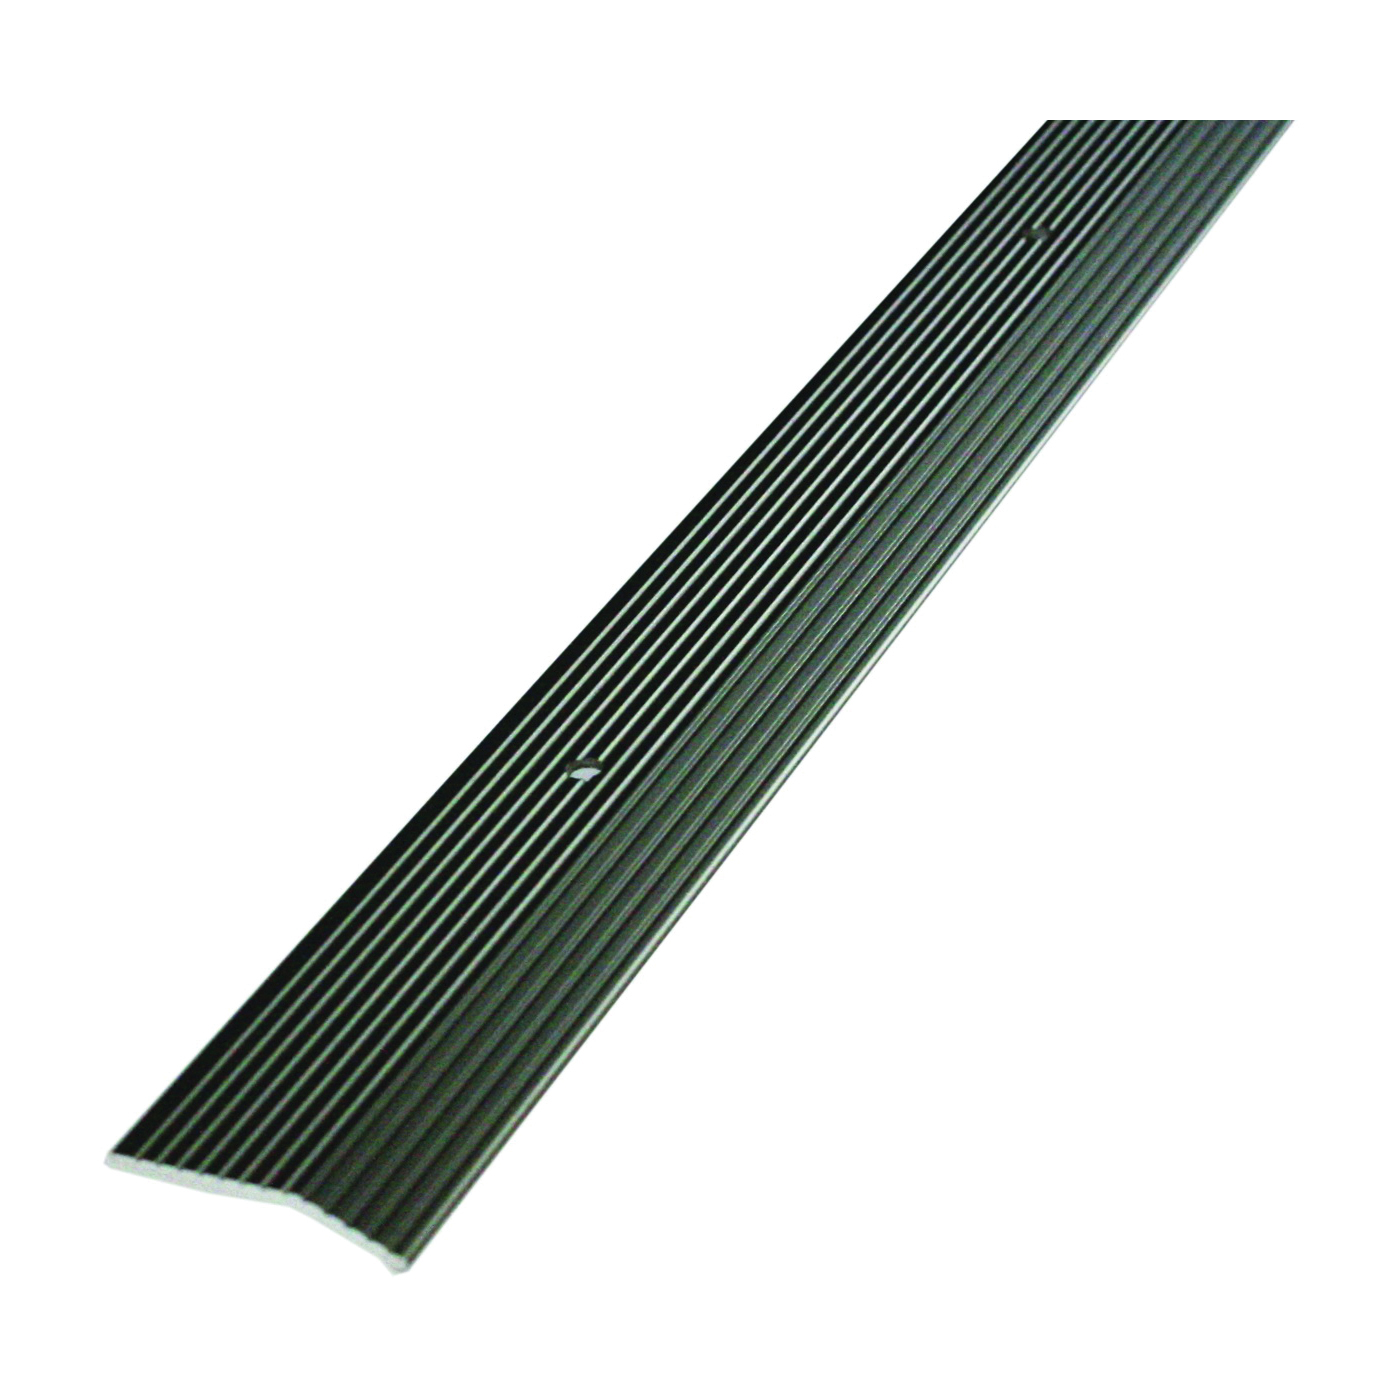 Picture of M-D 43854 Carpet Trim, 36 in L, 1-3/8 in W, Fluted Surface, Aluminum, Pewter